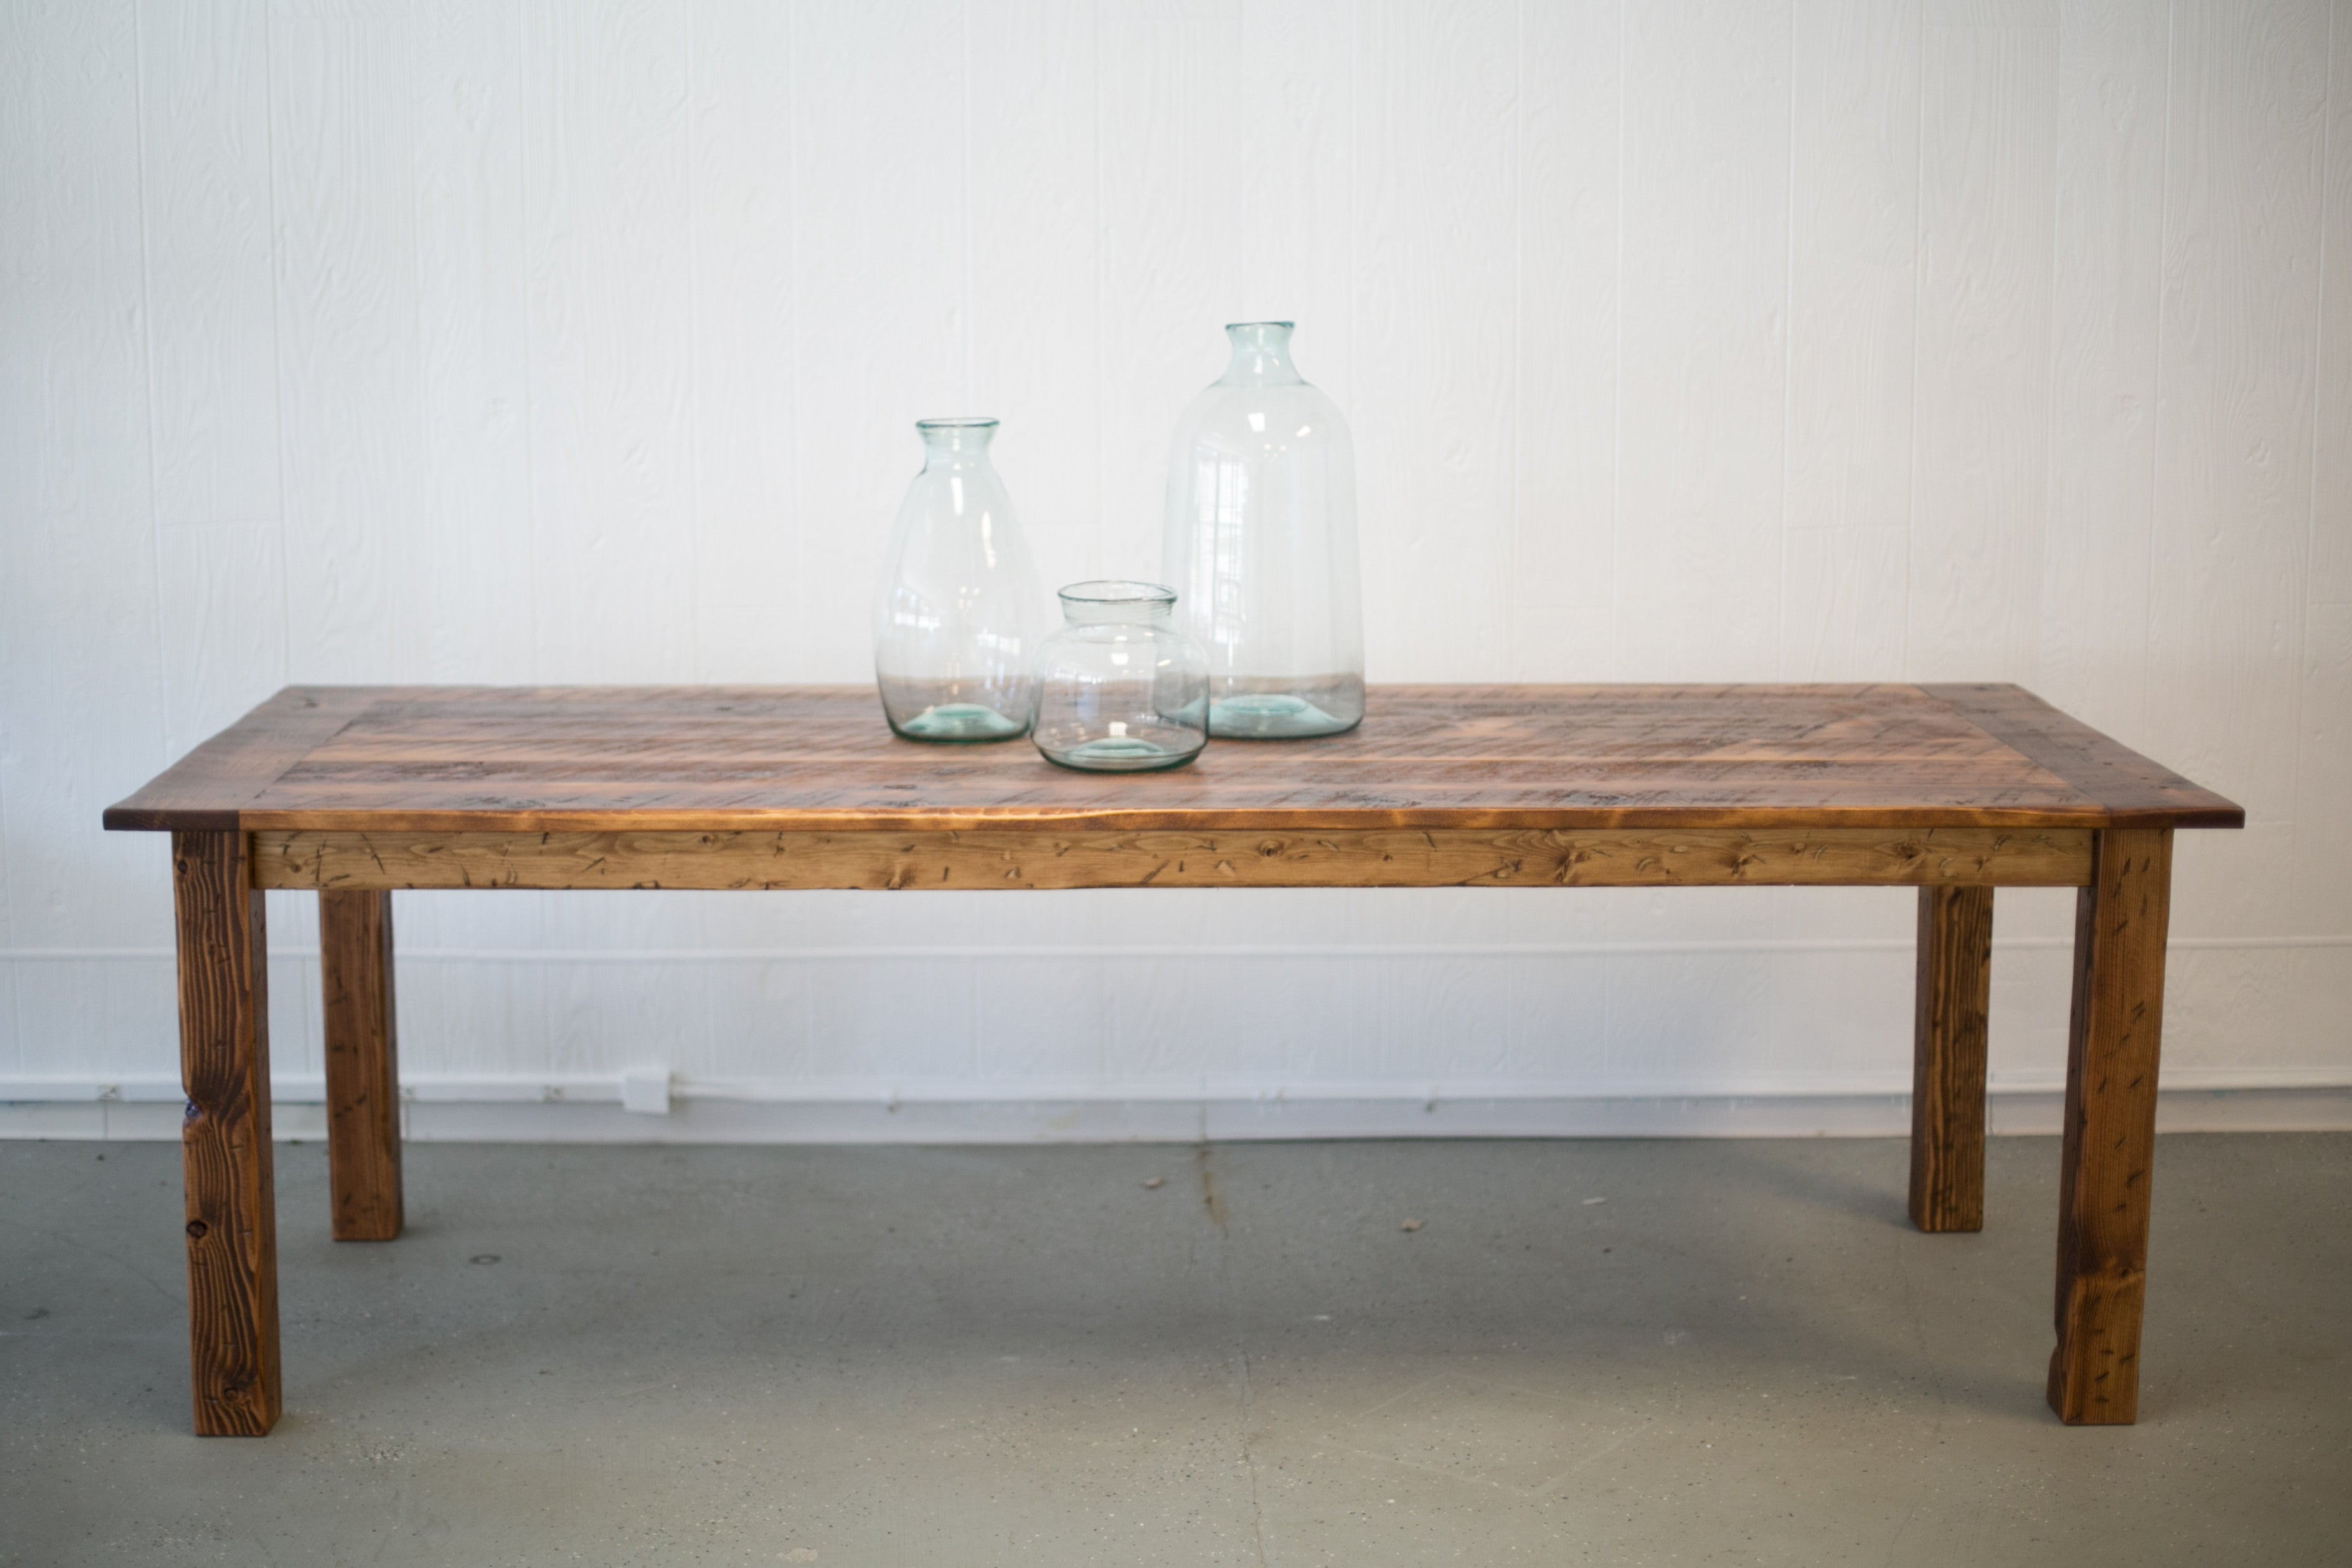 chic it corbel house stems farm cute was farmhouse gifted shanty to good vases i and industrial this me friends table some diy modern by bowl added bread that